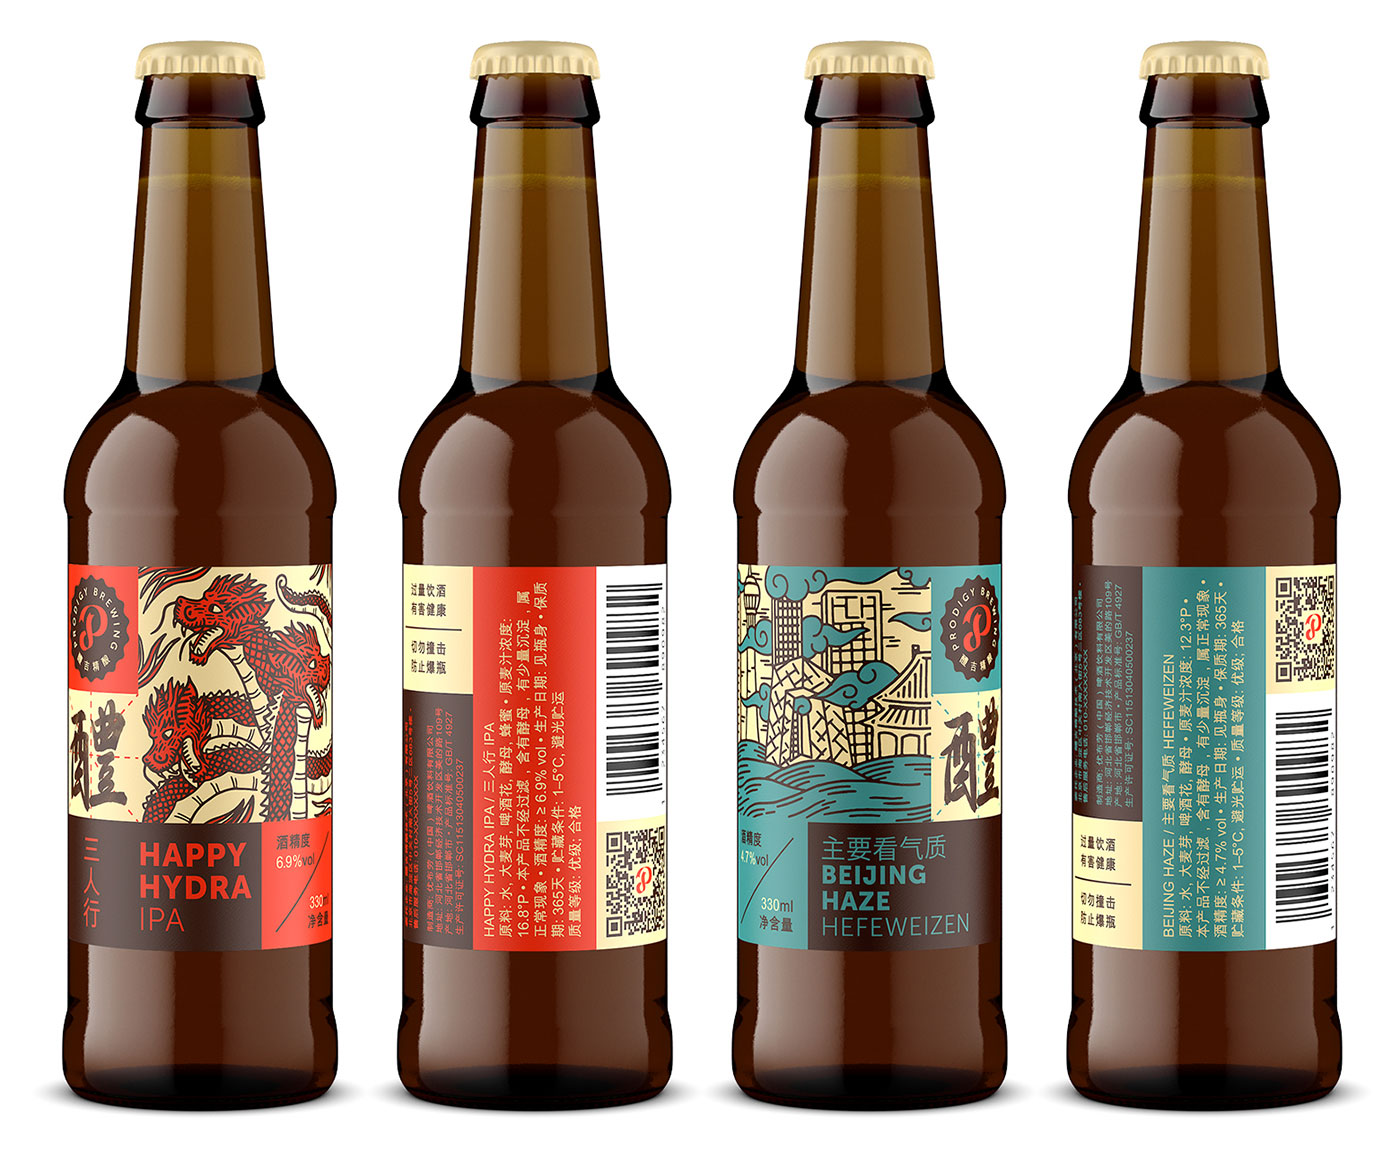 Prodigy Brewing bottles